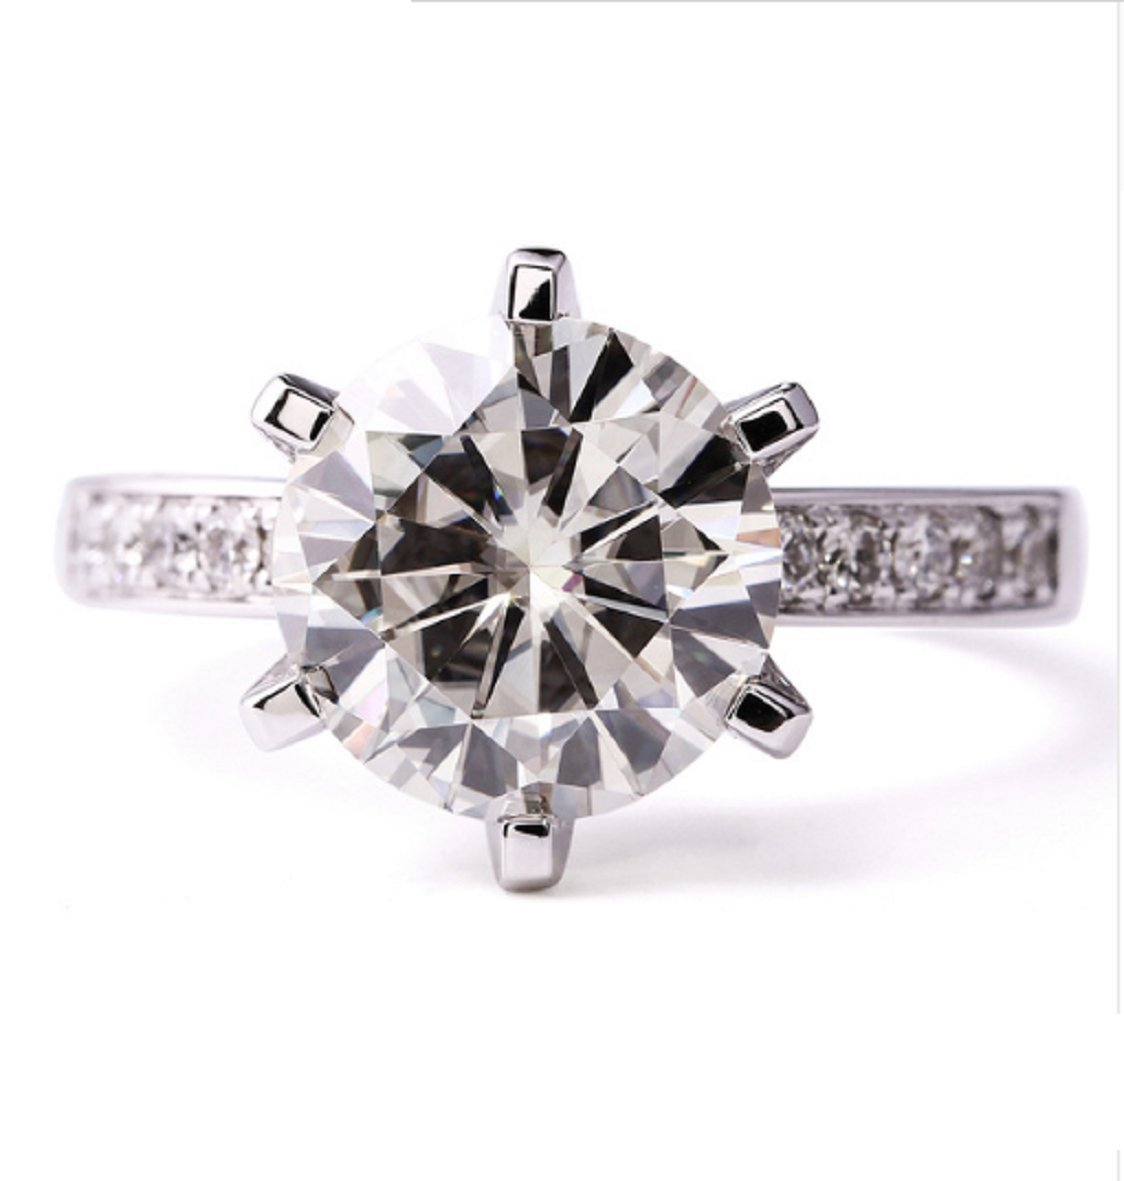 GOWE 6.0 CTW Carat Lab Grown Moissanite Diamond Wedding Engagement Solitaire Ring in Solid